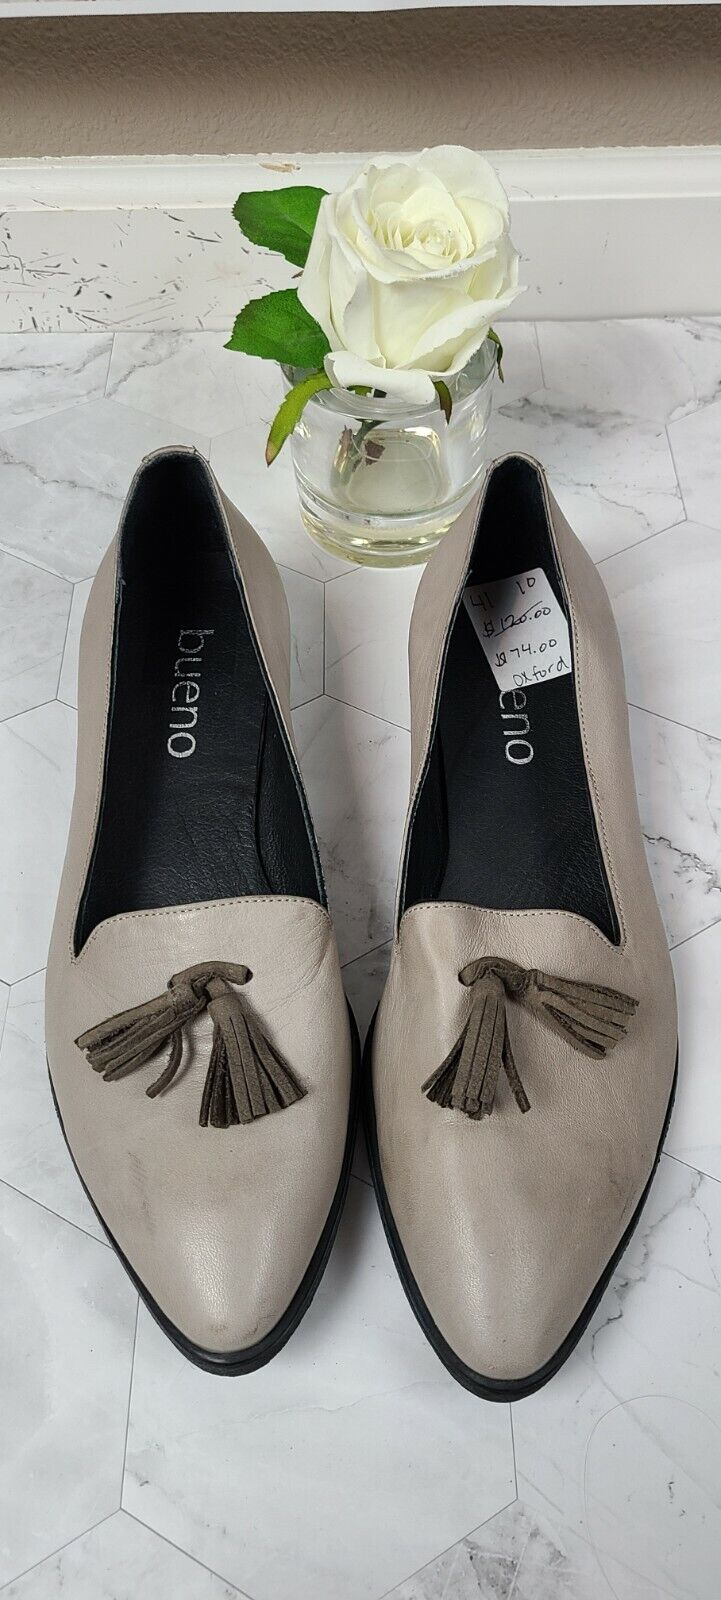 NEW Bueno Slip on Loafer Oxfords Gray SZ 41 US 10 Comfort